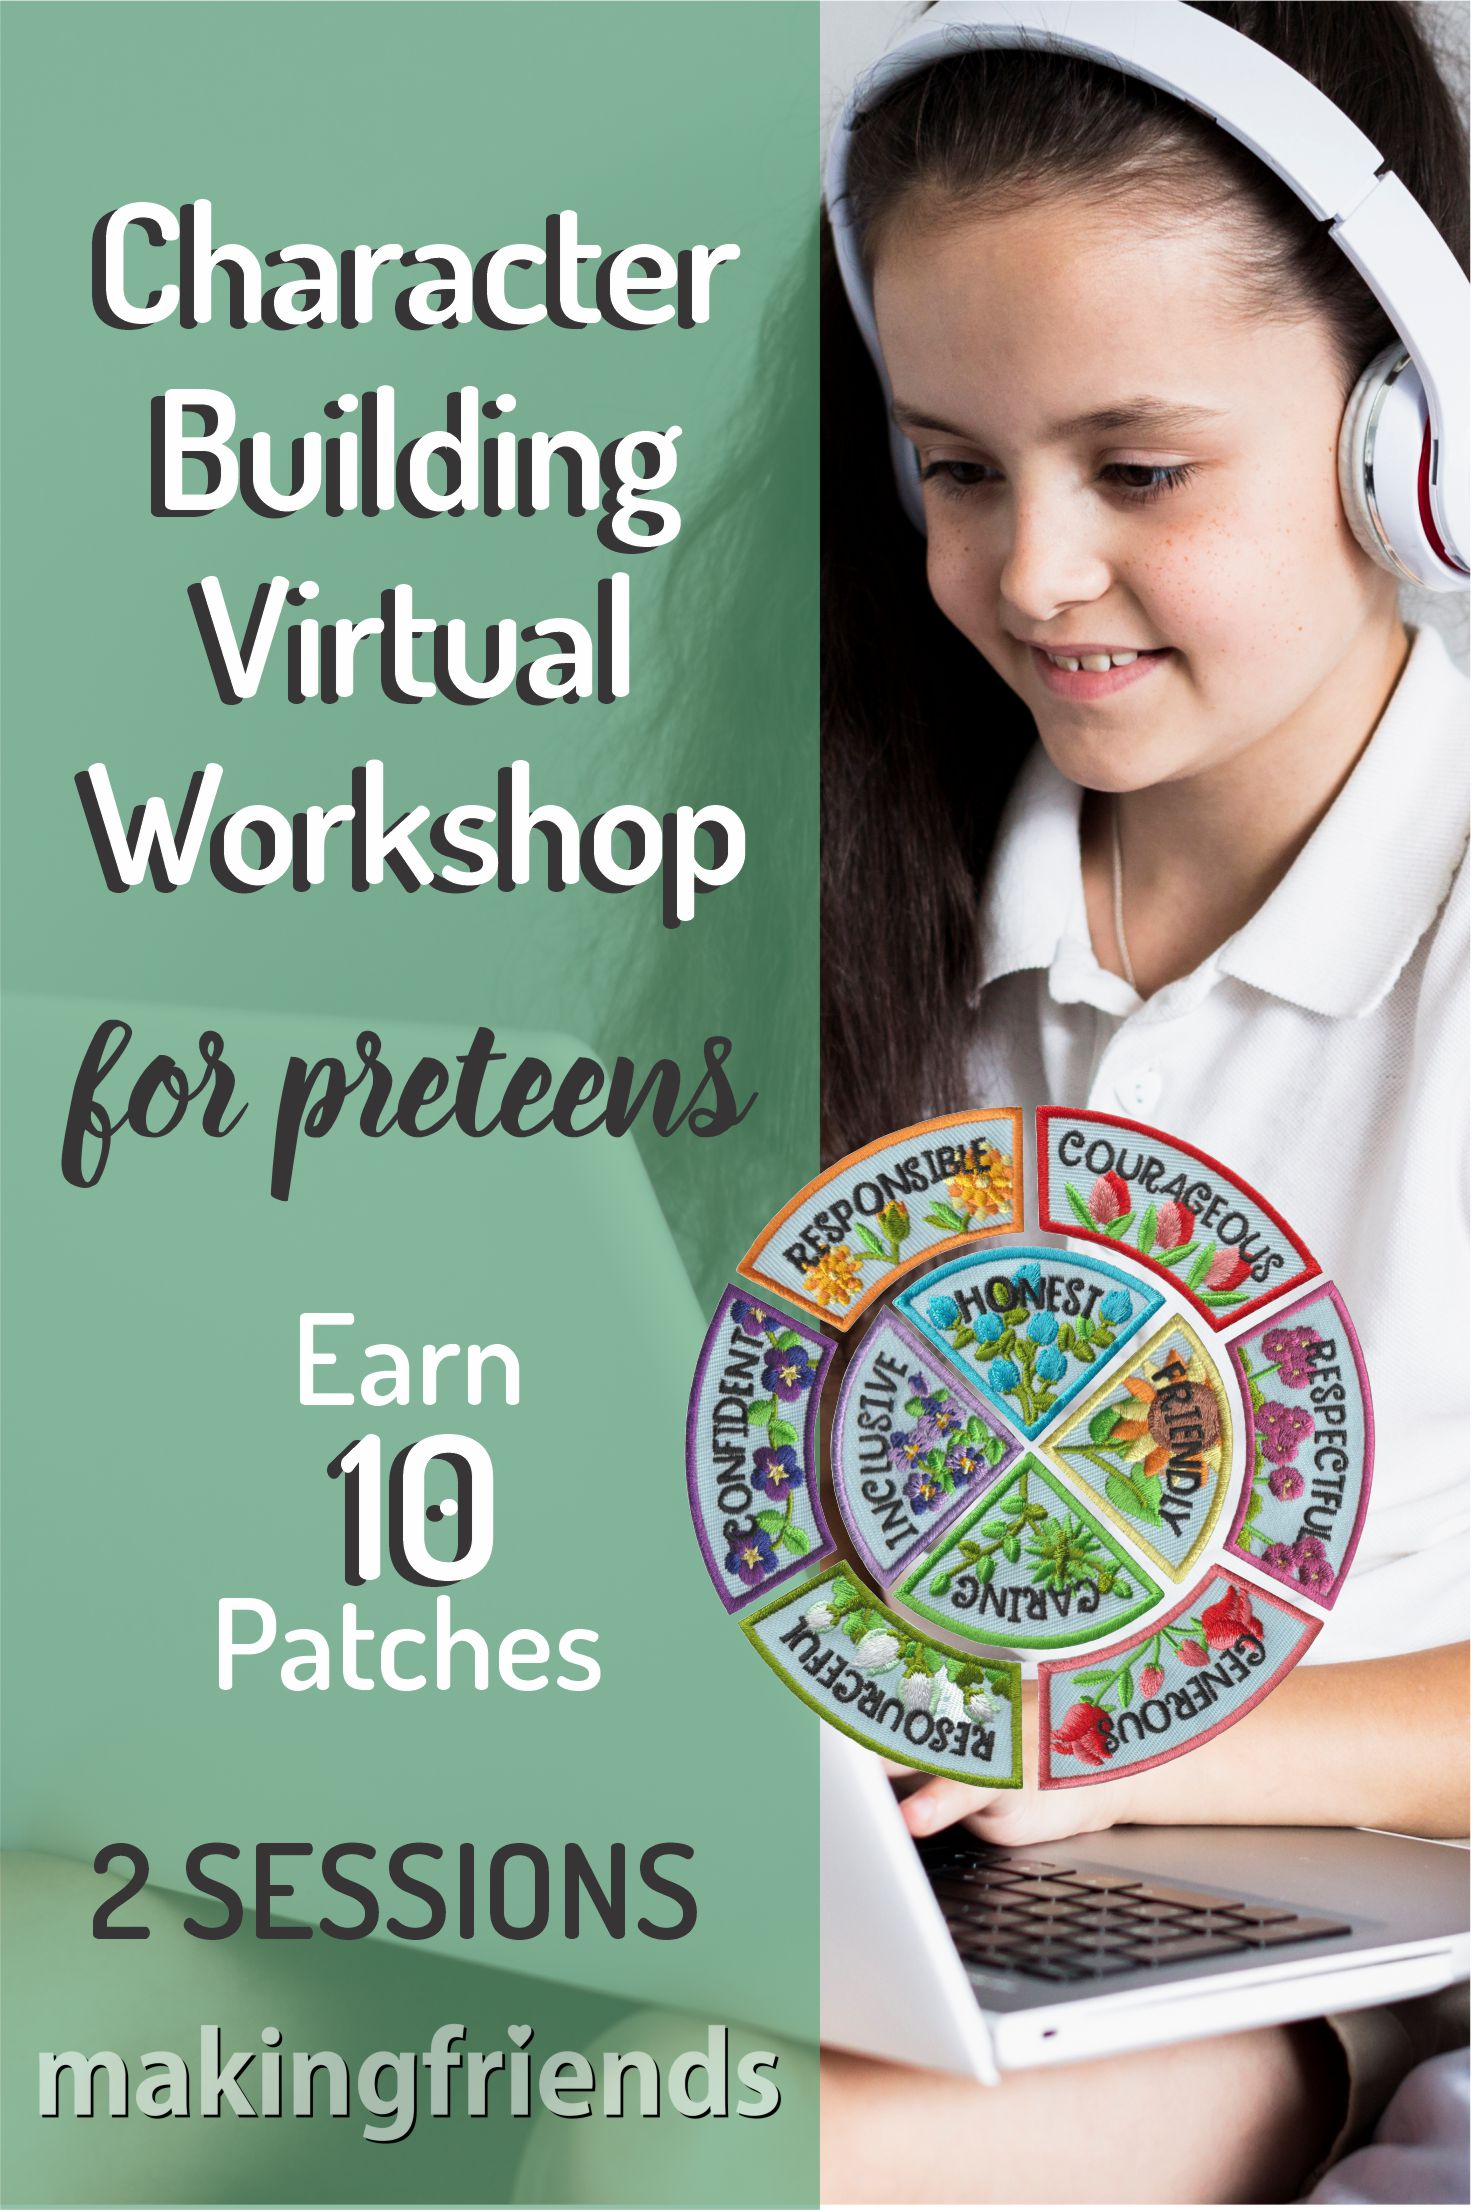 Join us for two, 1-hour virtual workshops, where Preteens revisit the Girl Scout law with contemporary topics worthy of discussion! Supplies and patches included!#girlscouts #onlineclass #virtualclass #characterbuilding #girlscoutjourney #tweens #onlineworkshop #gs #girlscouts via @gsleader411